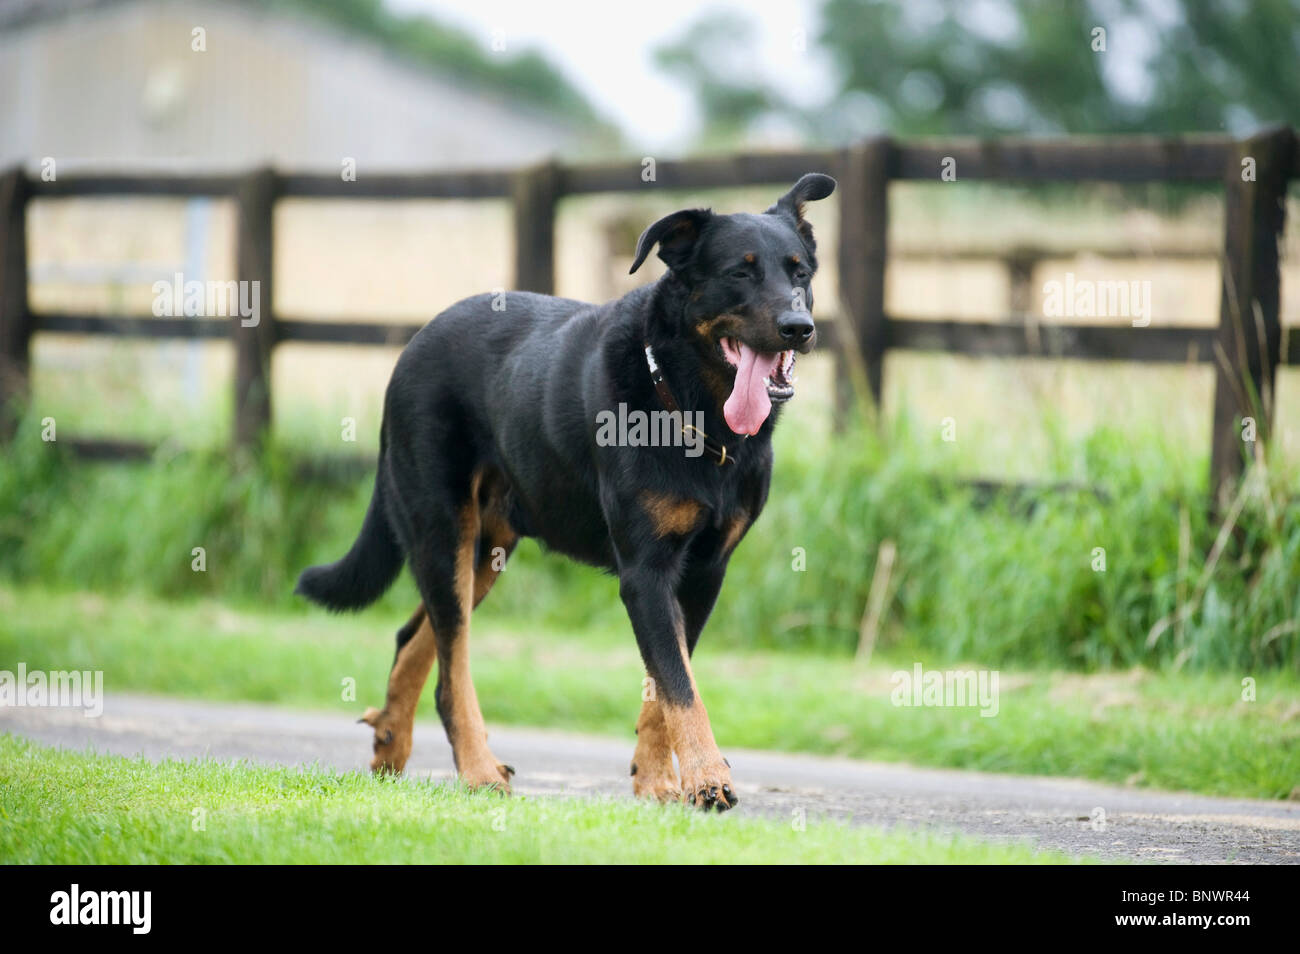 Labrador cross breed dog - Stock Image